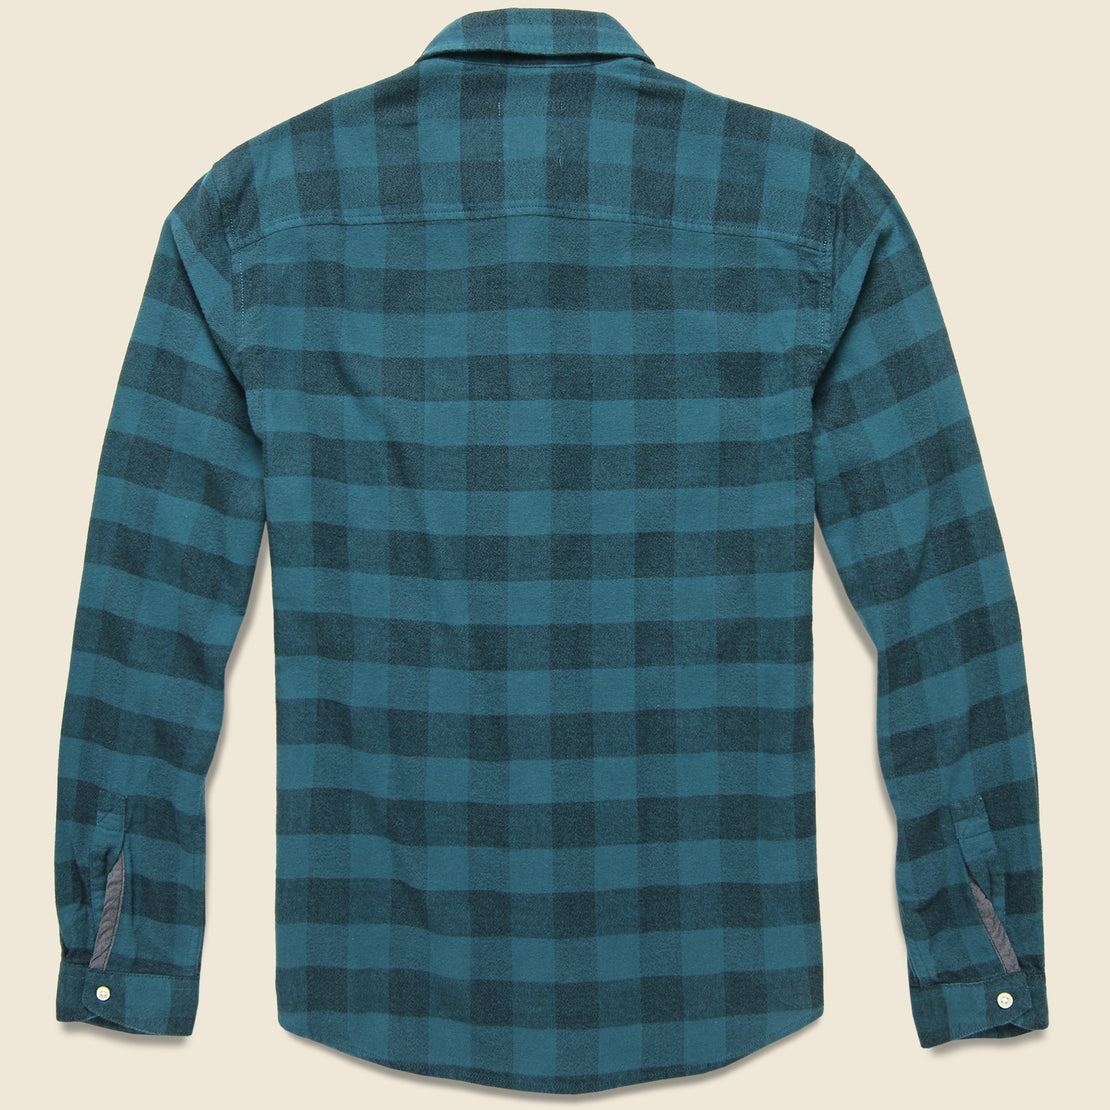 Allegheny Plaid Flannel - Comet Teal